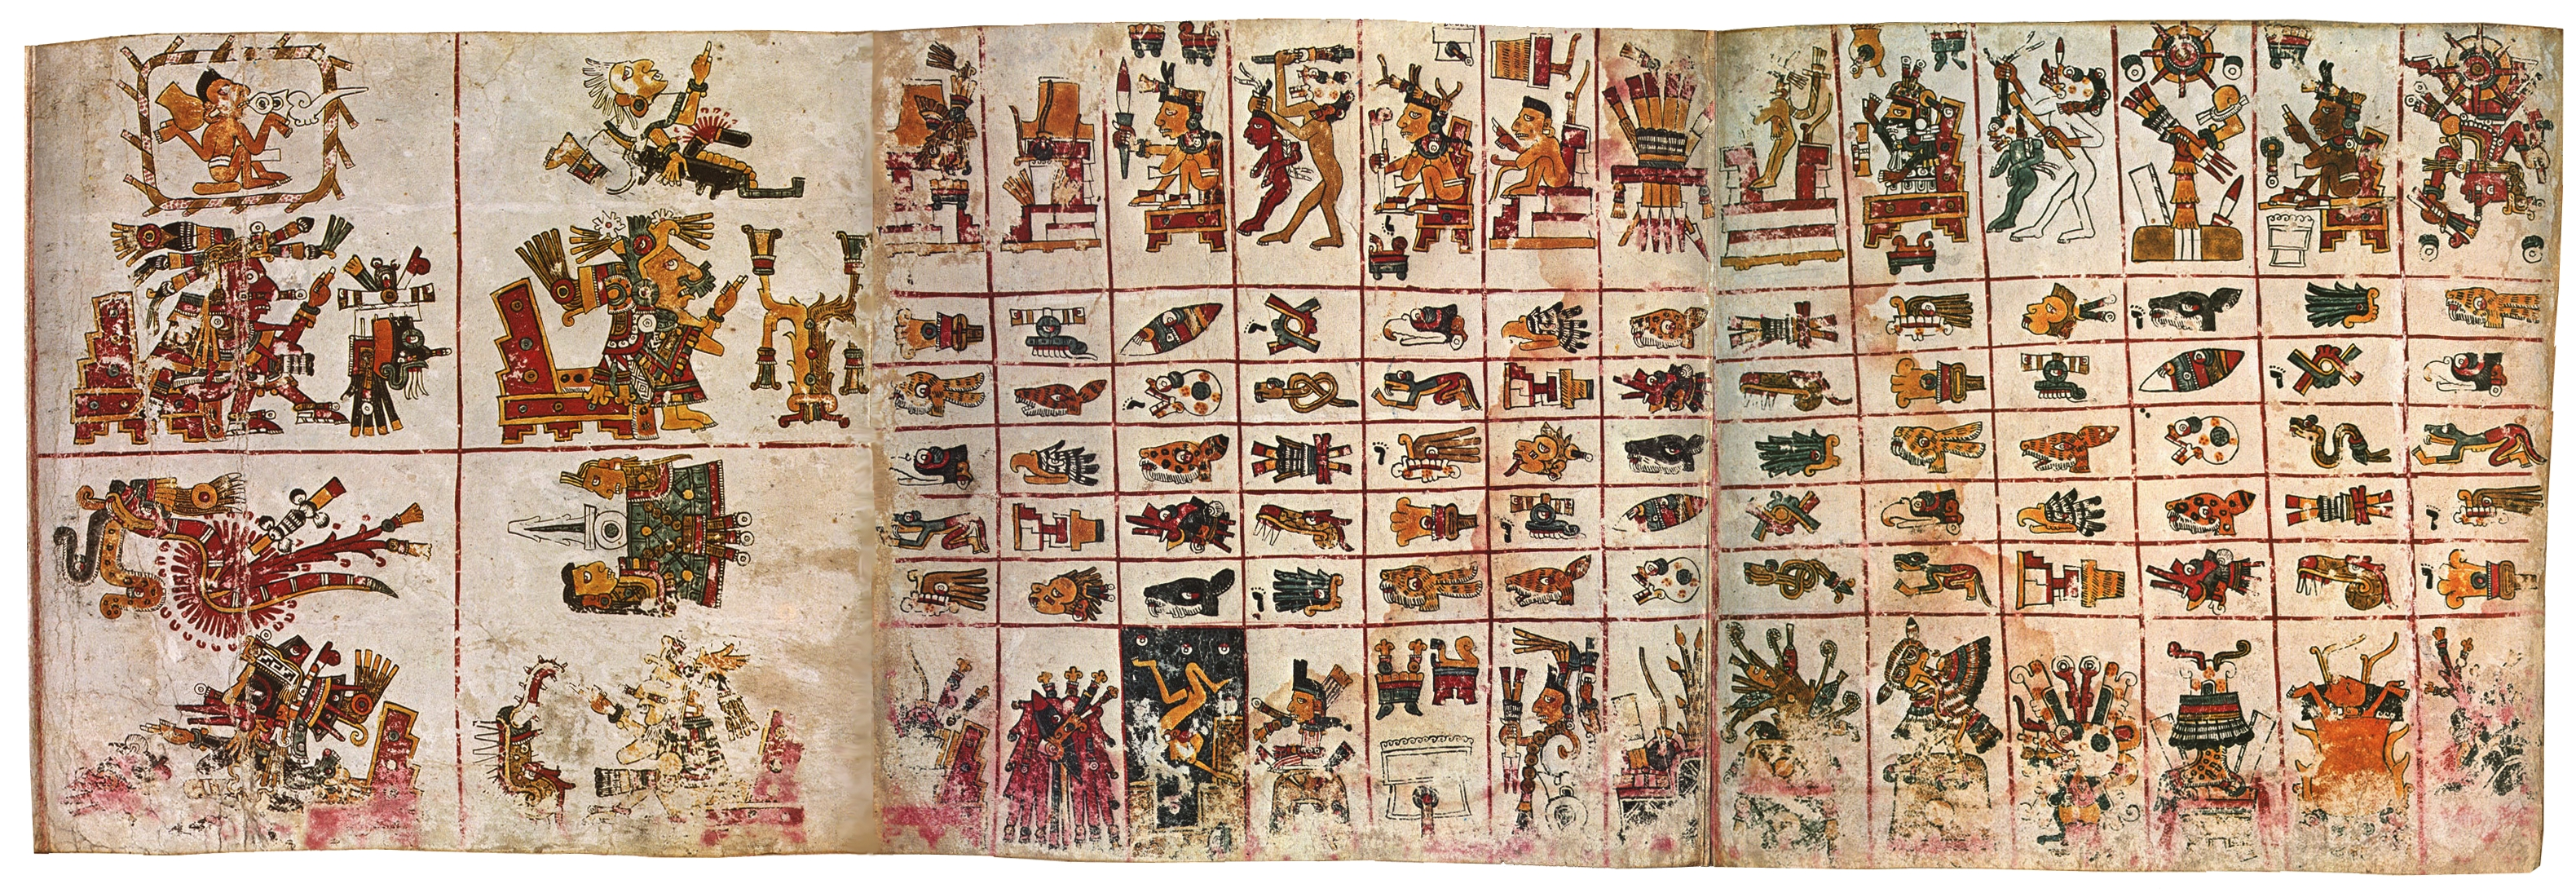 FIGURE 5. Pages 4-6 of the Codex Borgia.